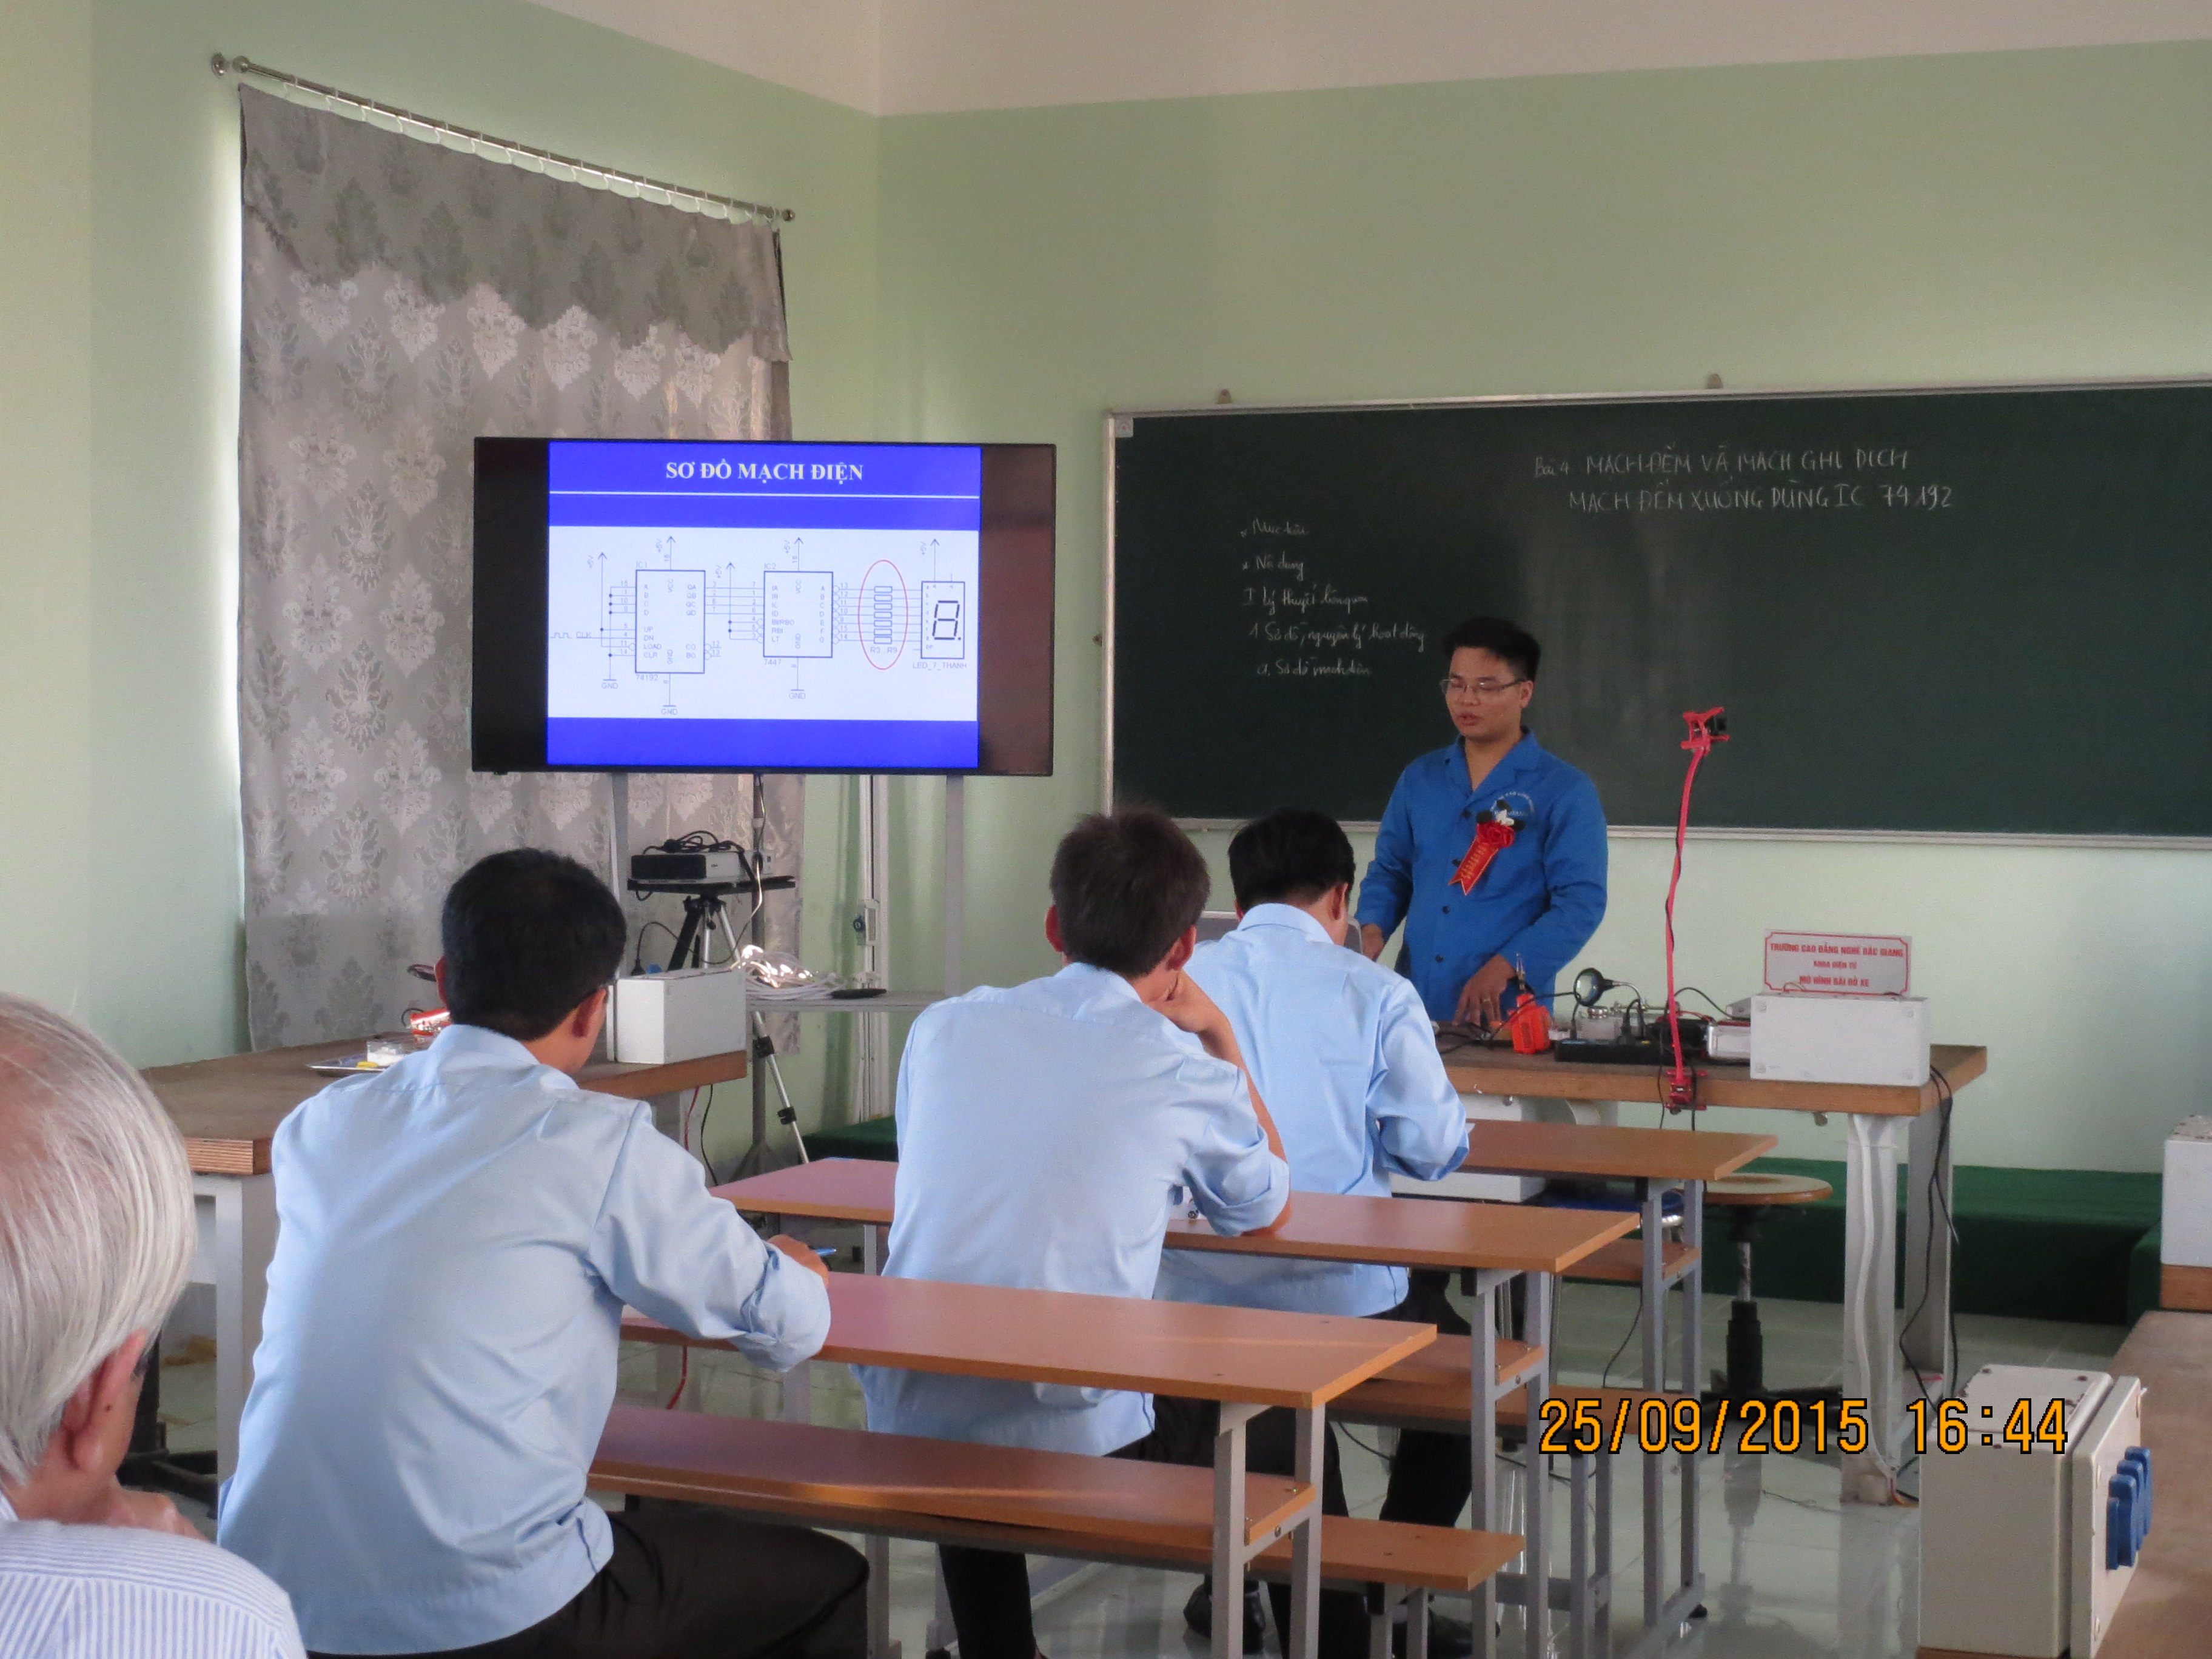 Sub-committee of Electronics gives comments on the last lecture of Teachers'competition